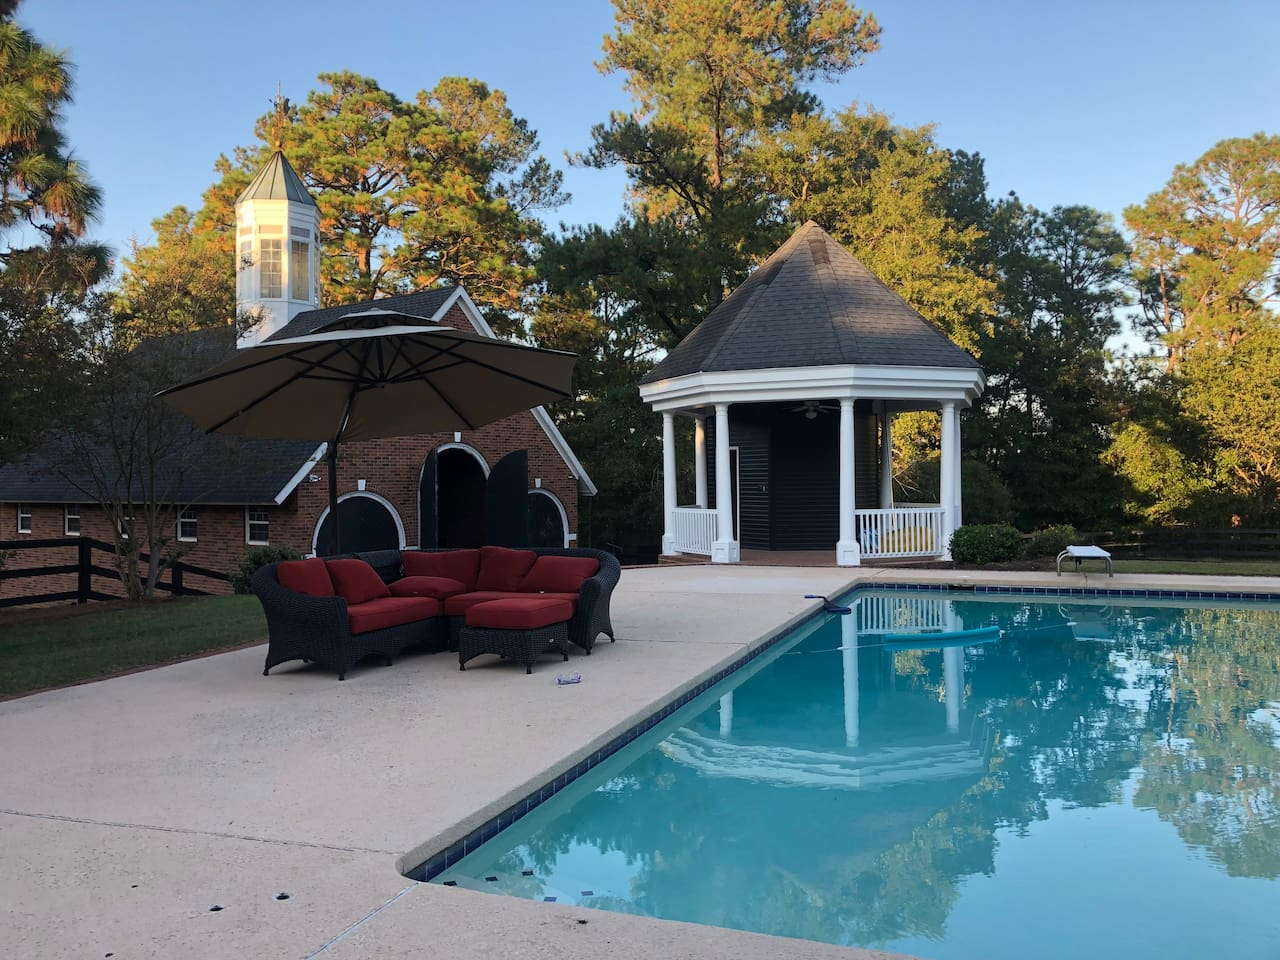 View of the barn, gazebo and pool from the main house (the carriage house is to the left just out of view)